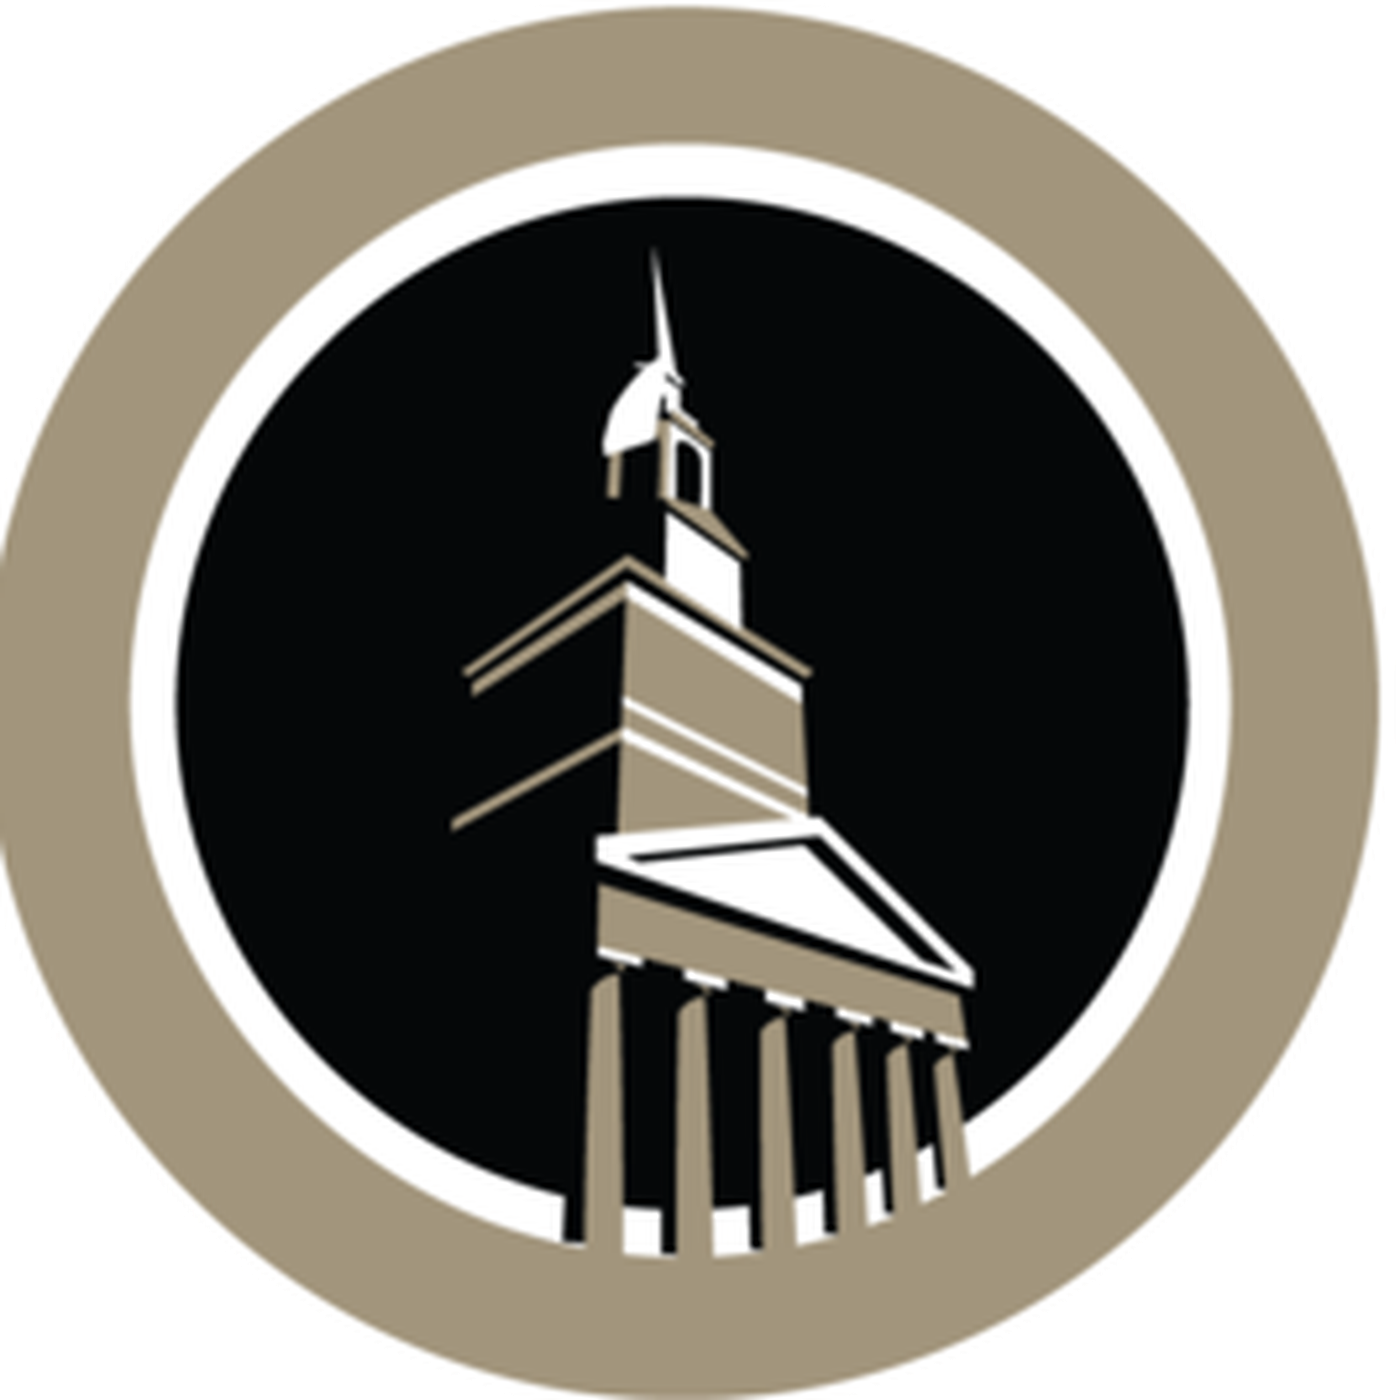 Three thumbs up down. Ball state bell tower png jpg transparent